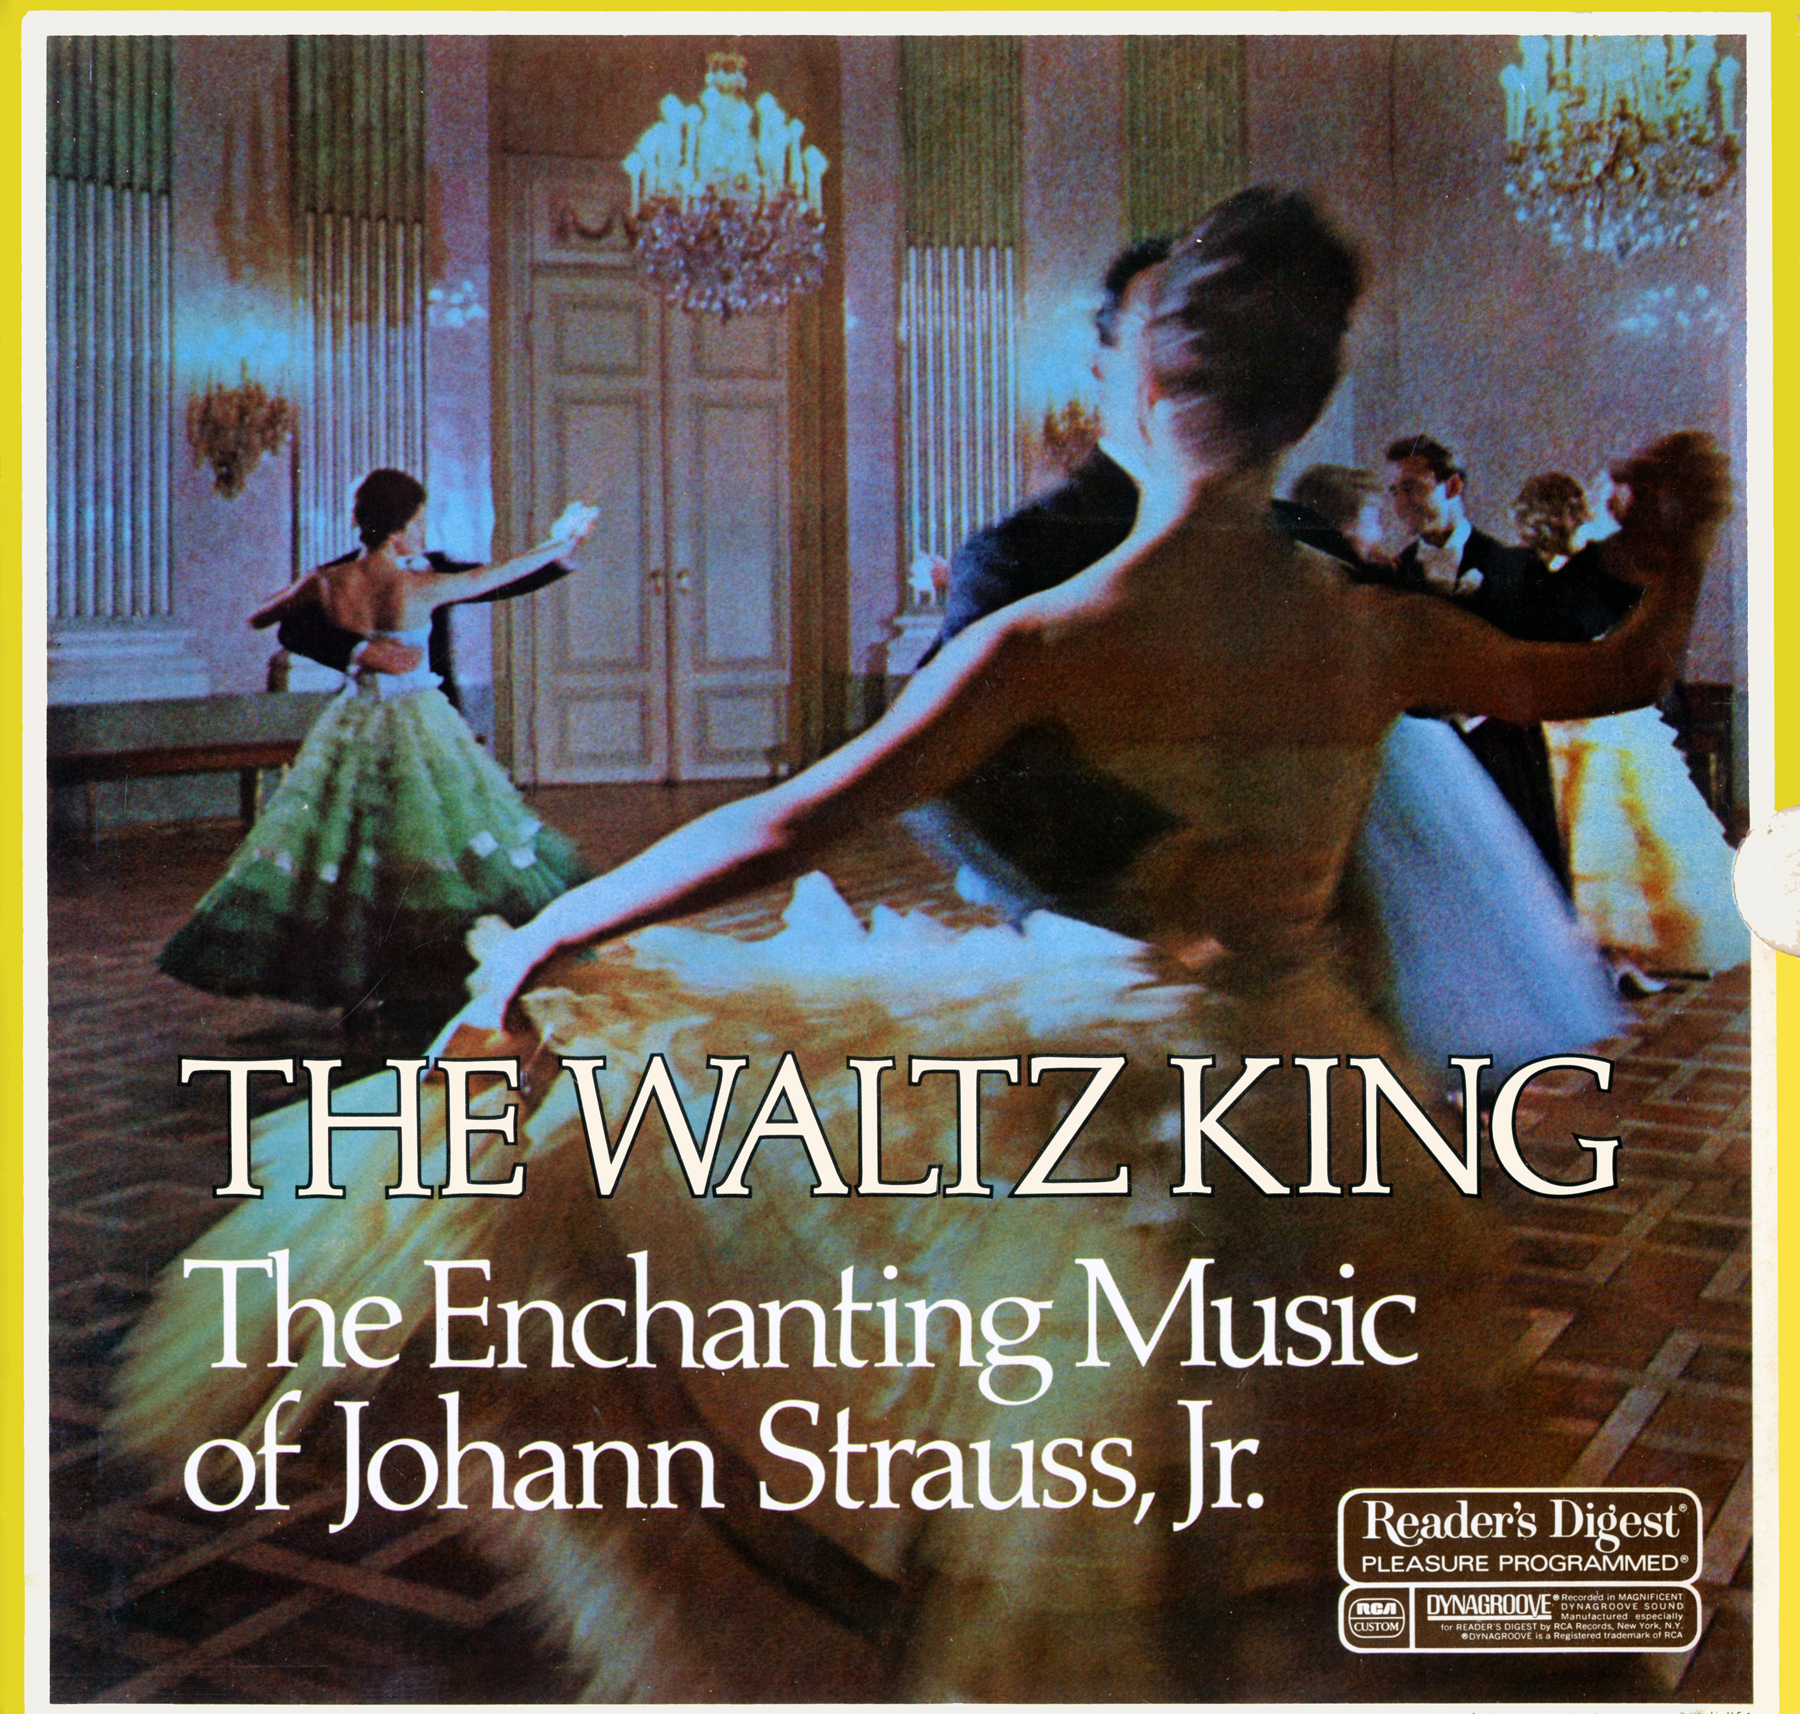 RDA19 - Waltz King - Enchanted Music of Johann Strauss Jr.  on CD